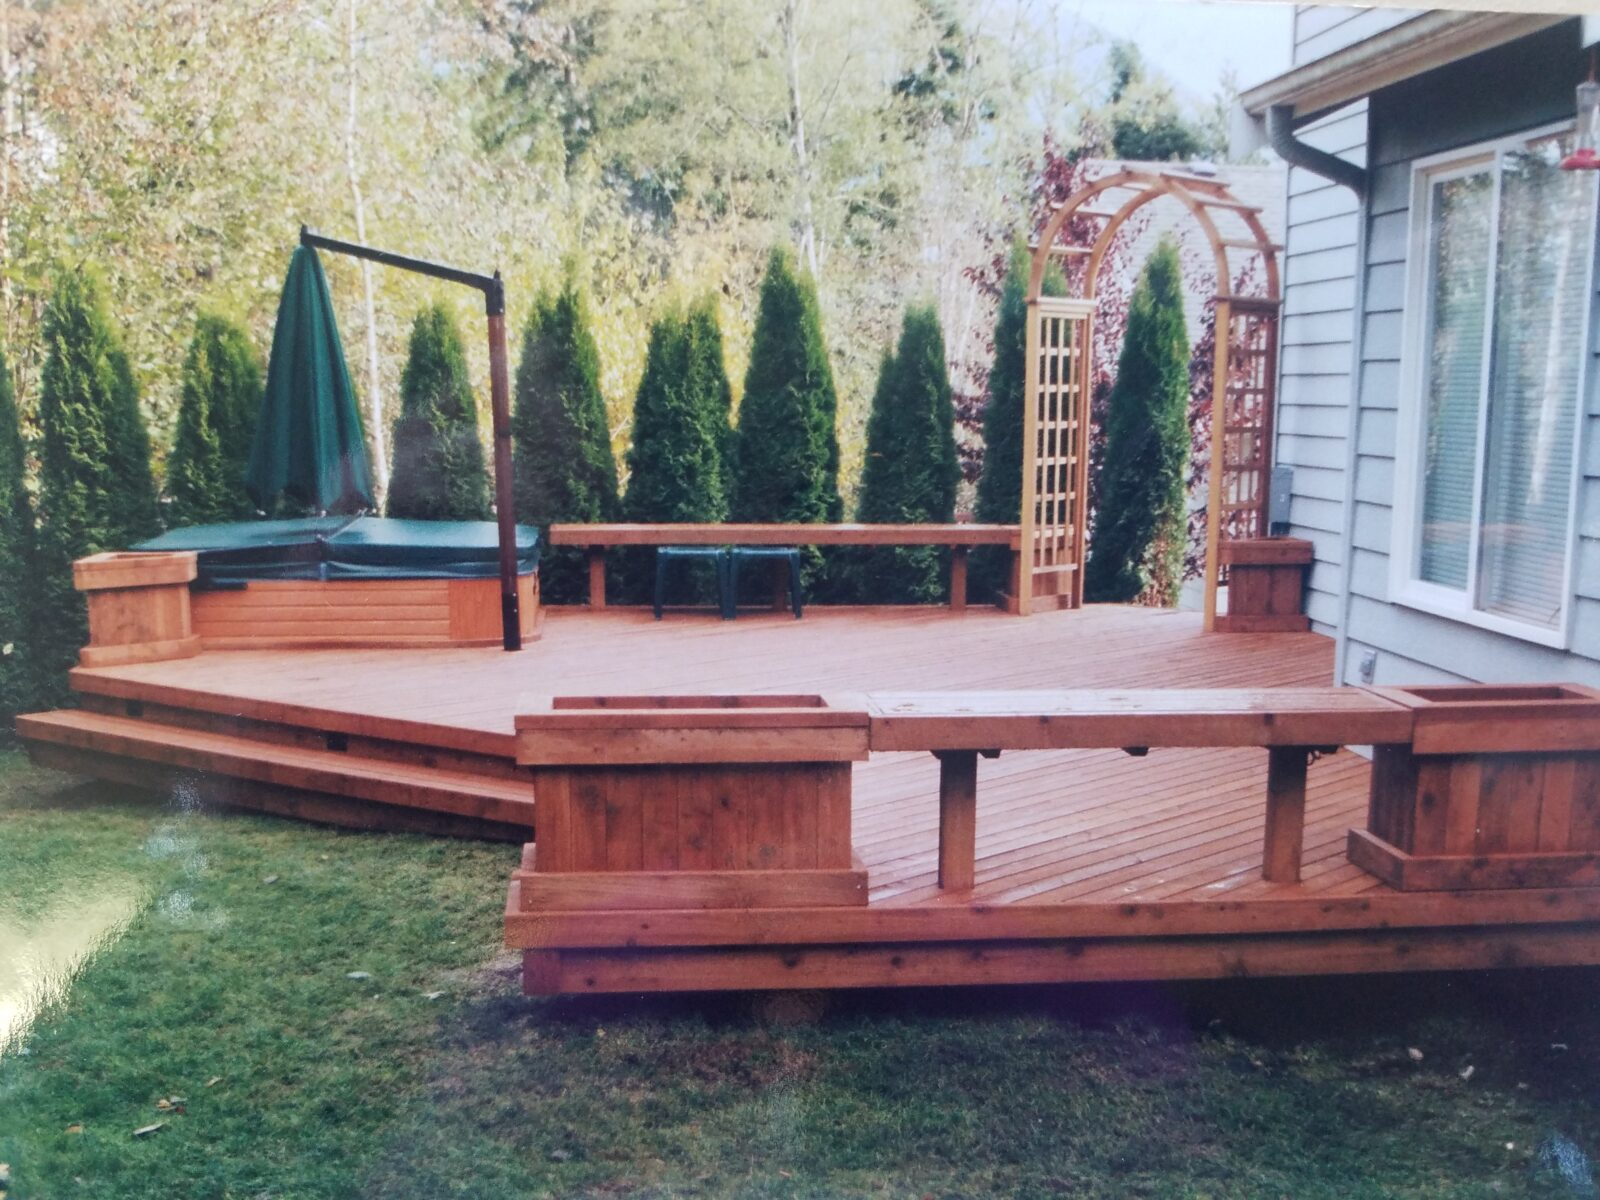 Deck with whirlpool and benches